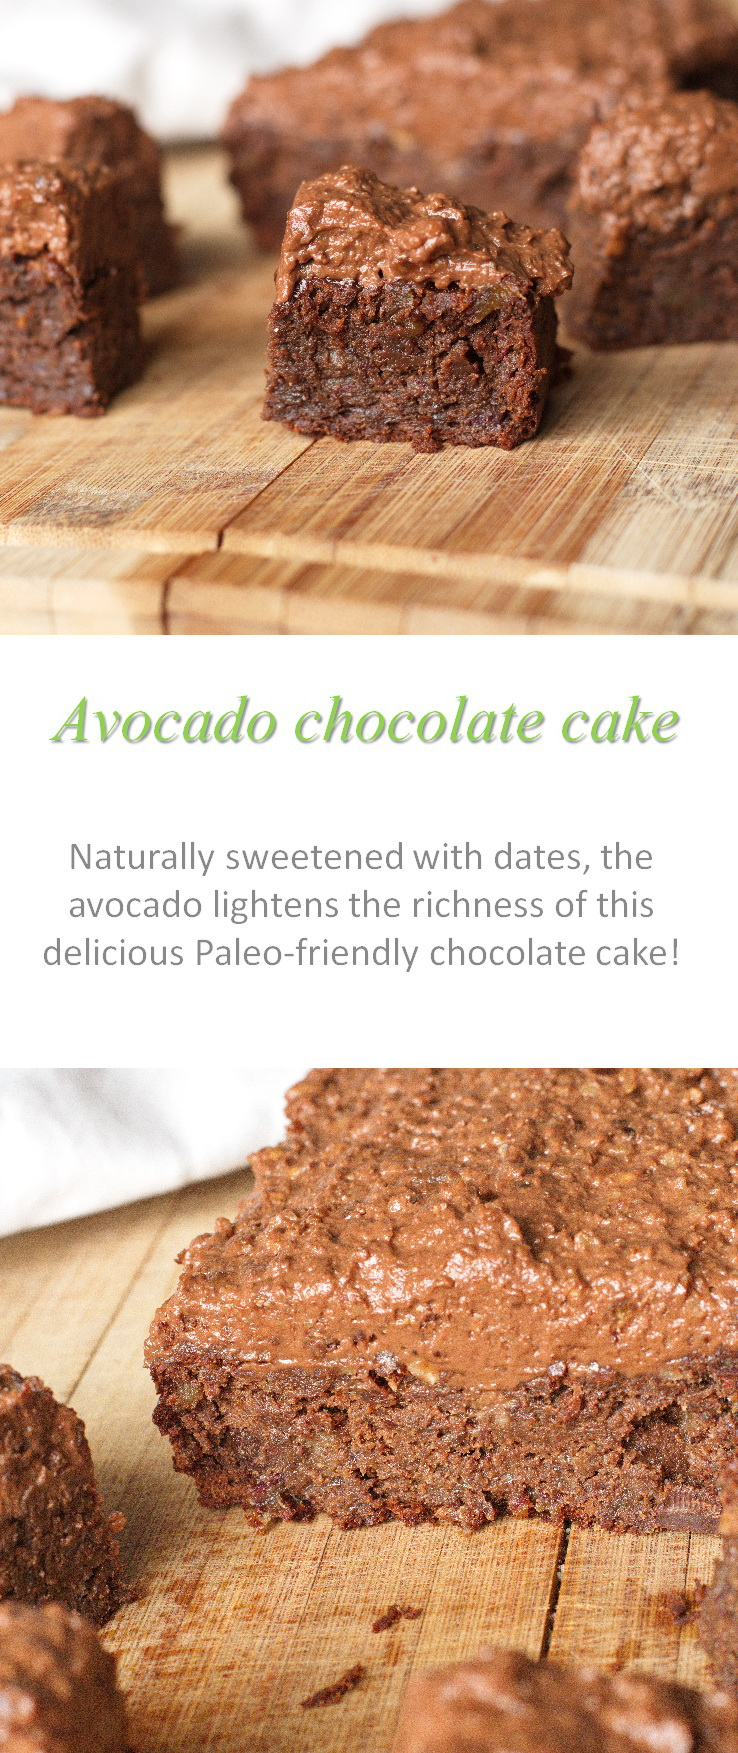 A naturally-sweetened, Paleo-friendly, rich avocado chocolate cake with the awesome green ingredient! #chocolatecake